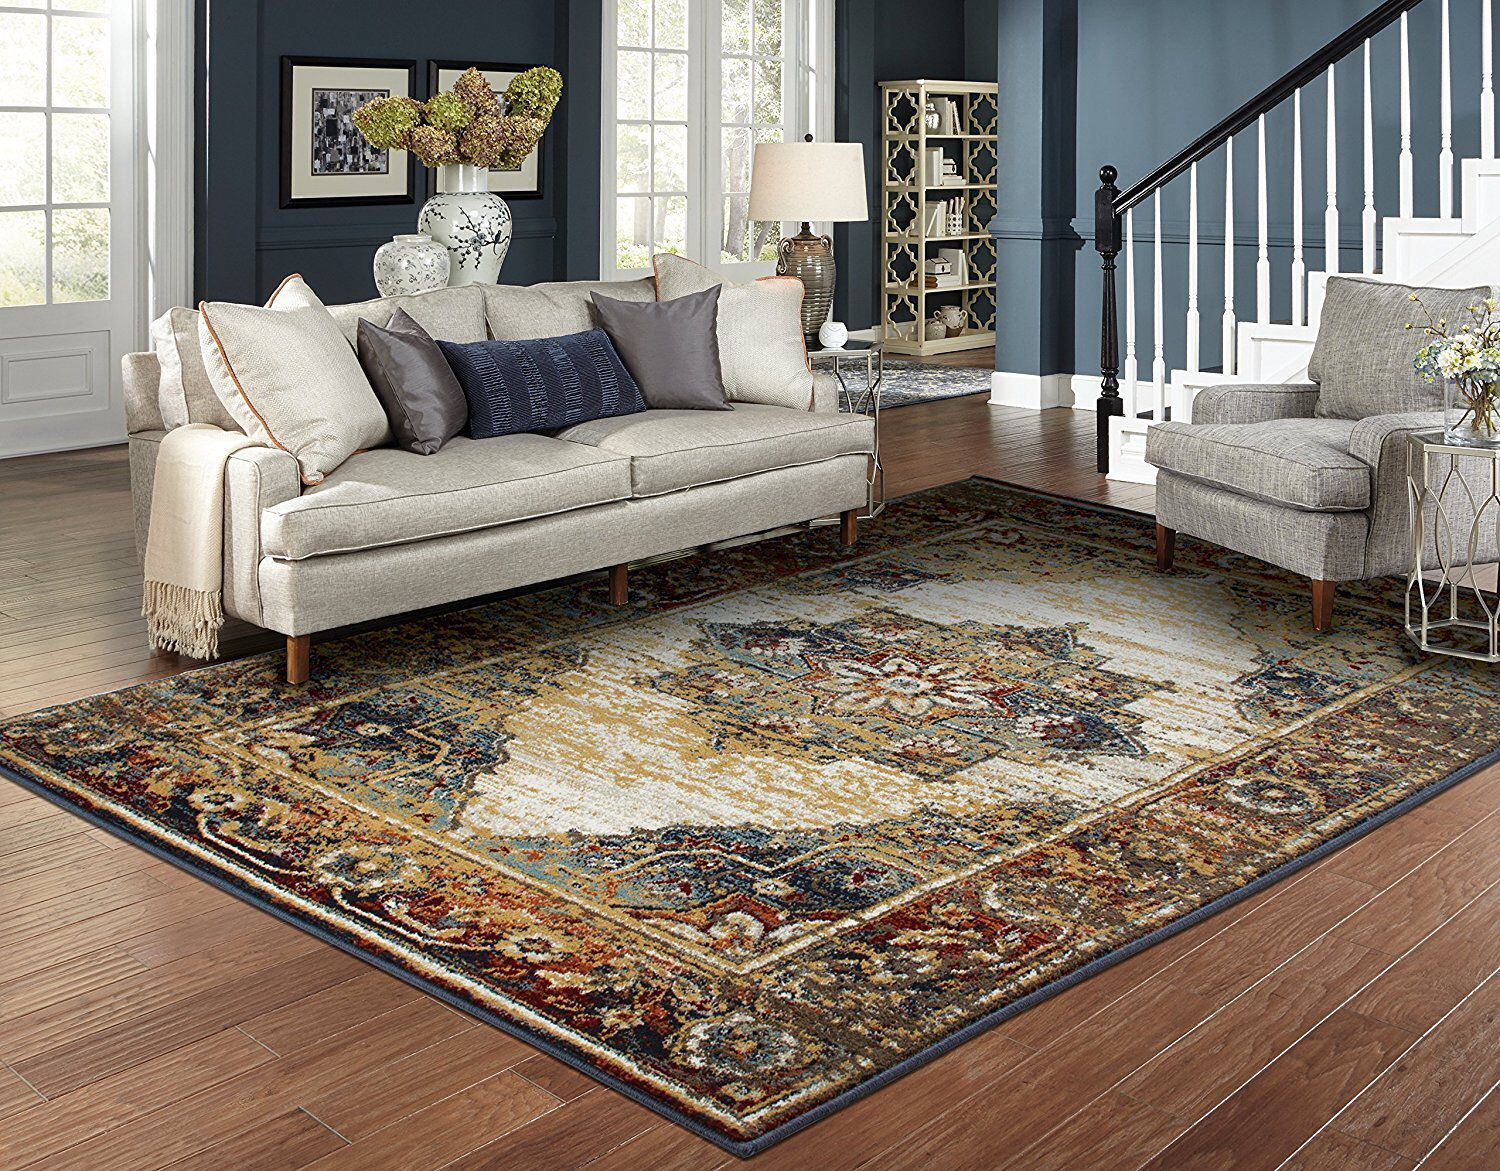 Ragan Foyer Navy Blue Beige Area Rug Area Rugs Rugs In Living